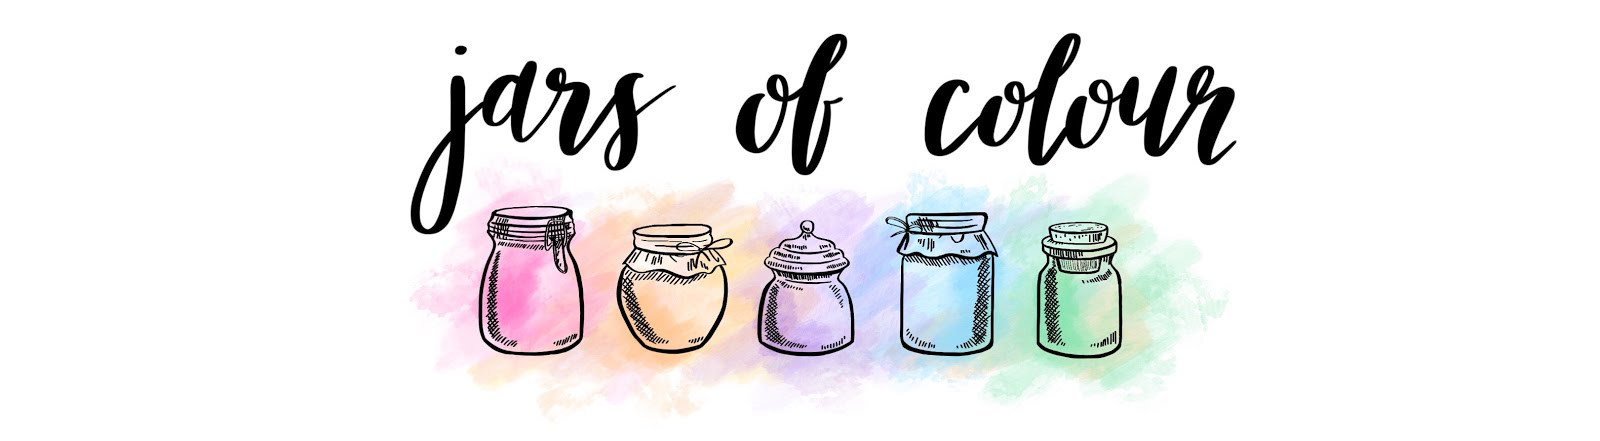 Jars of Colour